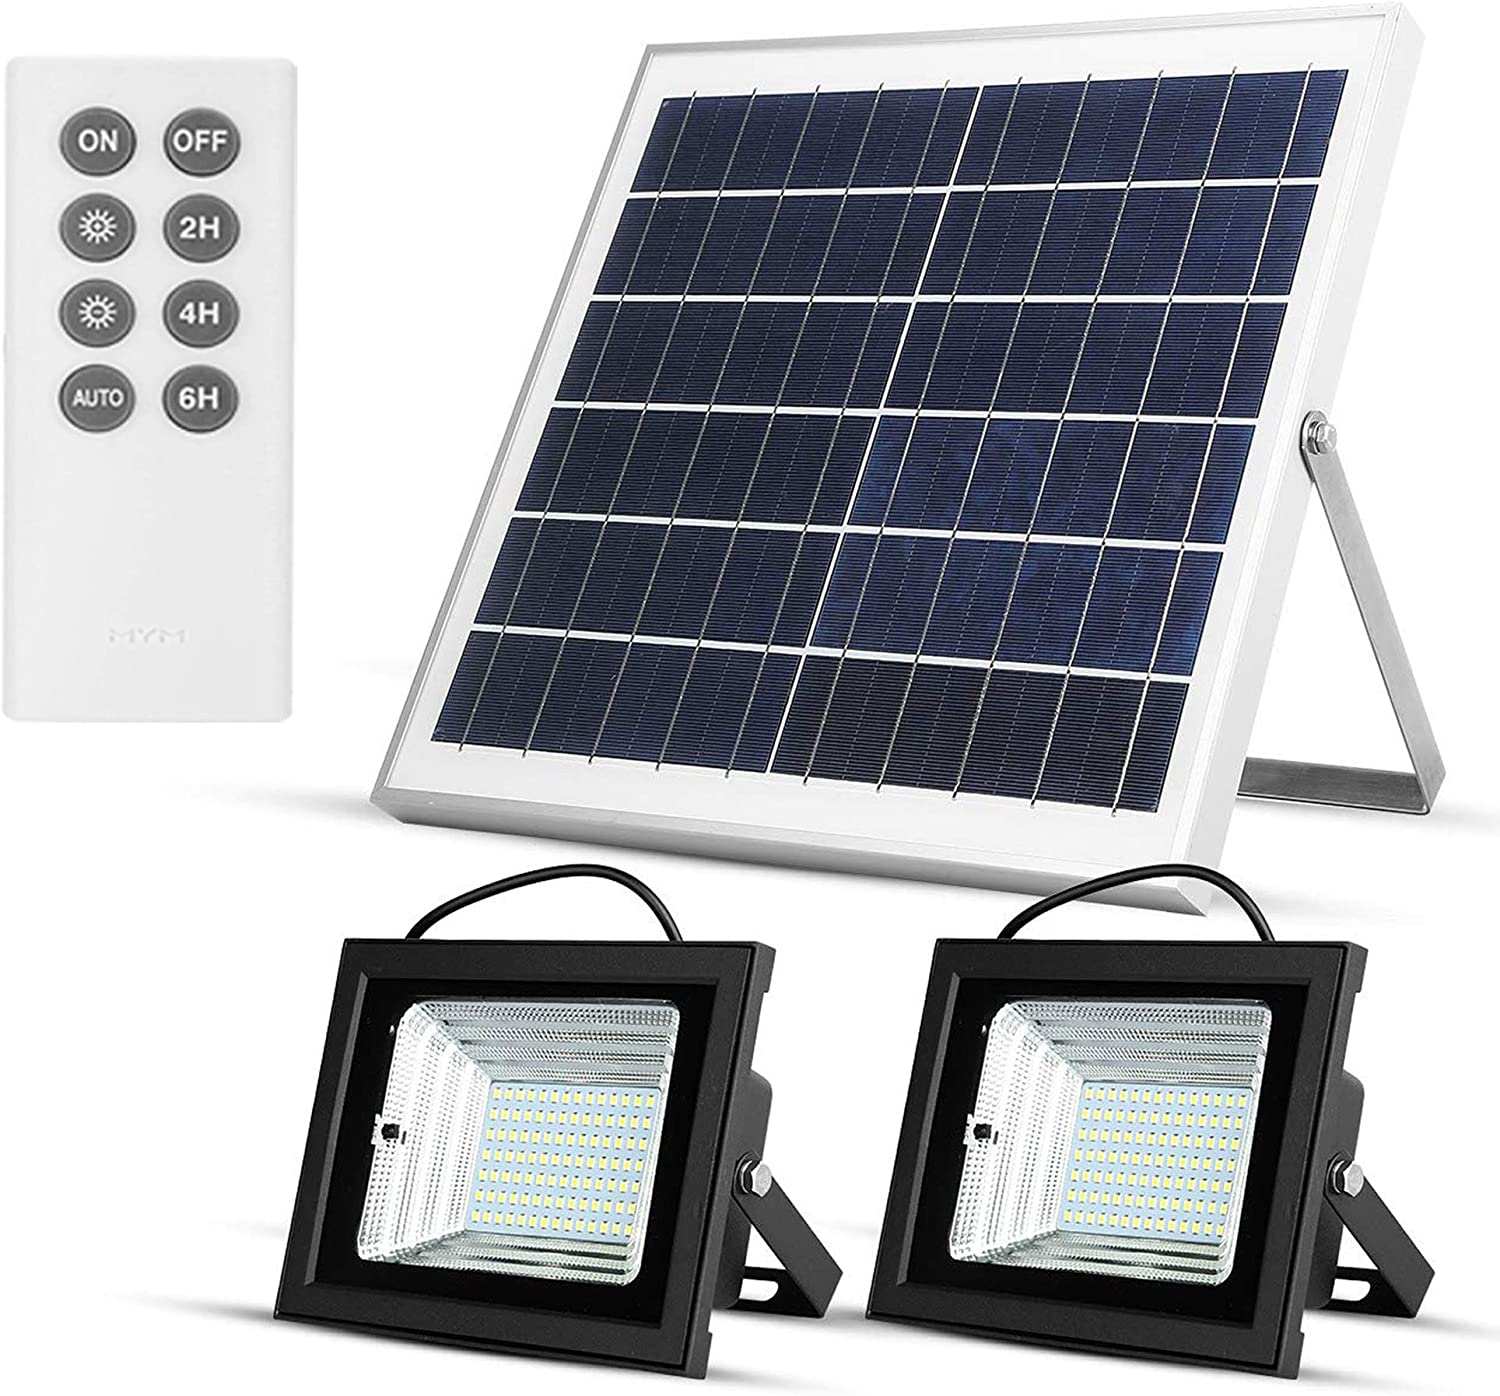 Richarm Solar Flood Reservation Sale Special Price Lights Control Powered Remote Outdoor